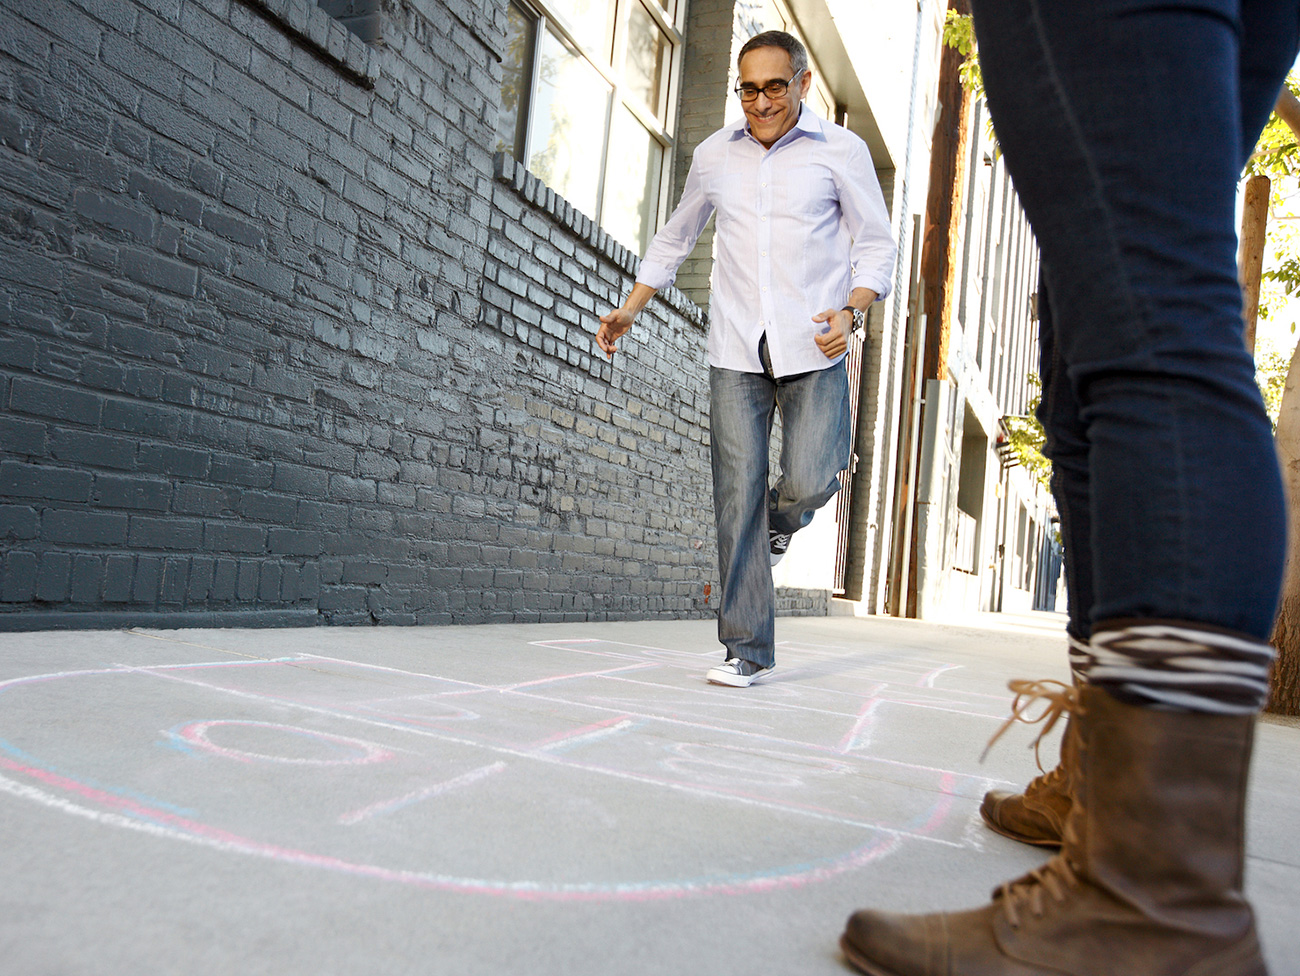 Man playing hopscotch